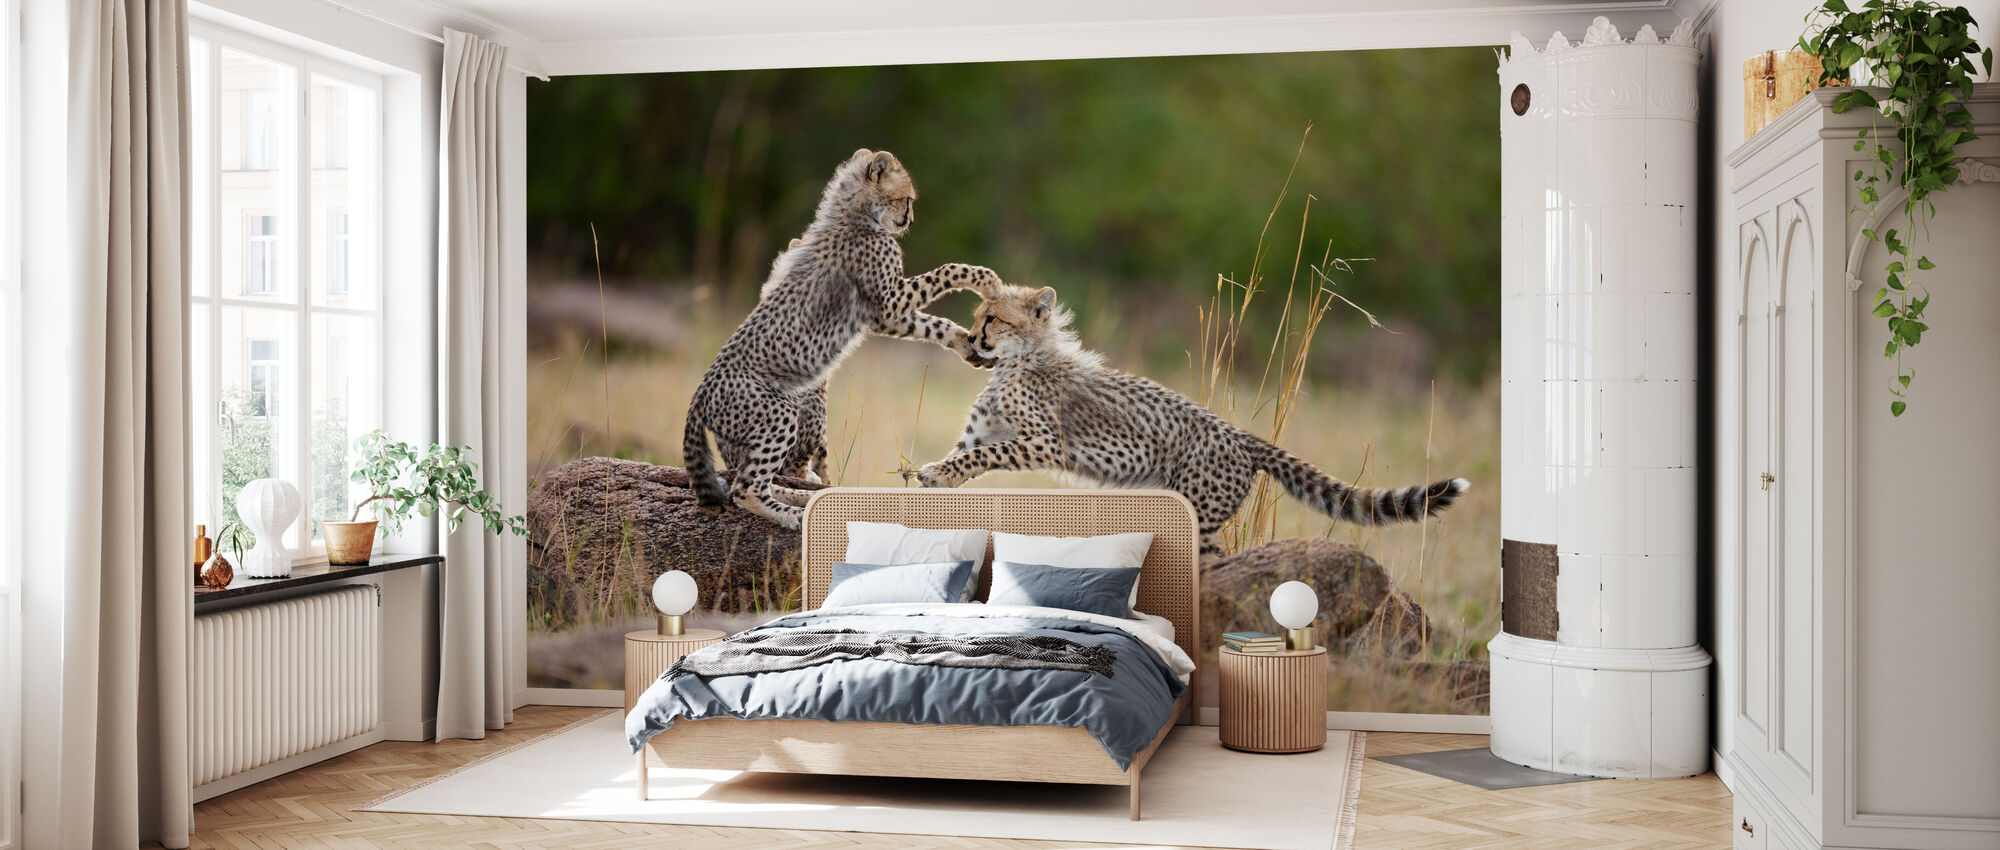 Cheetah Cubs Playing - Wallpaper - Bedroom